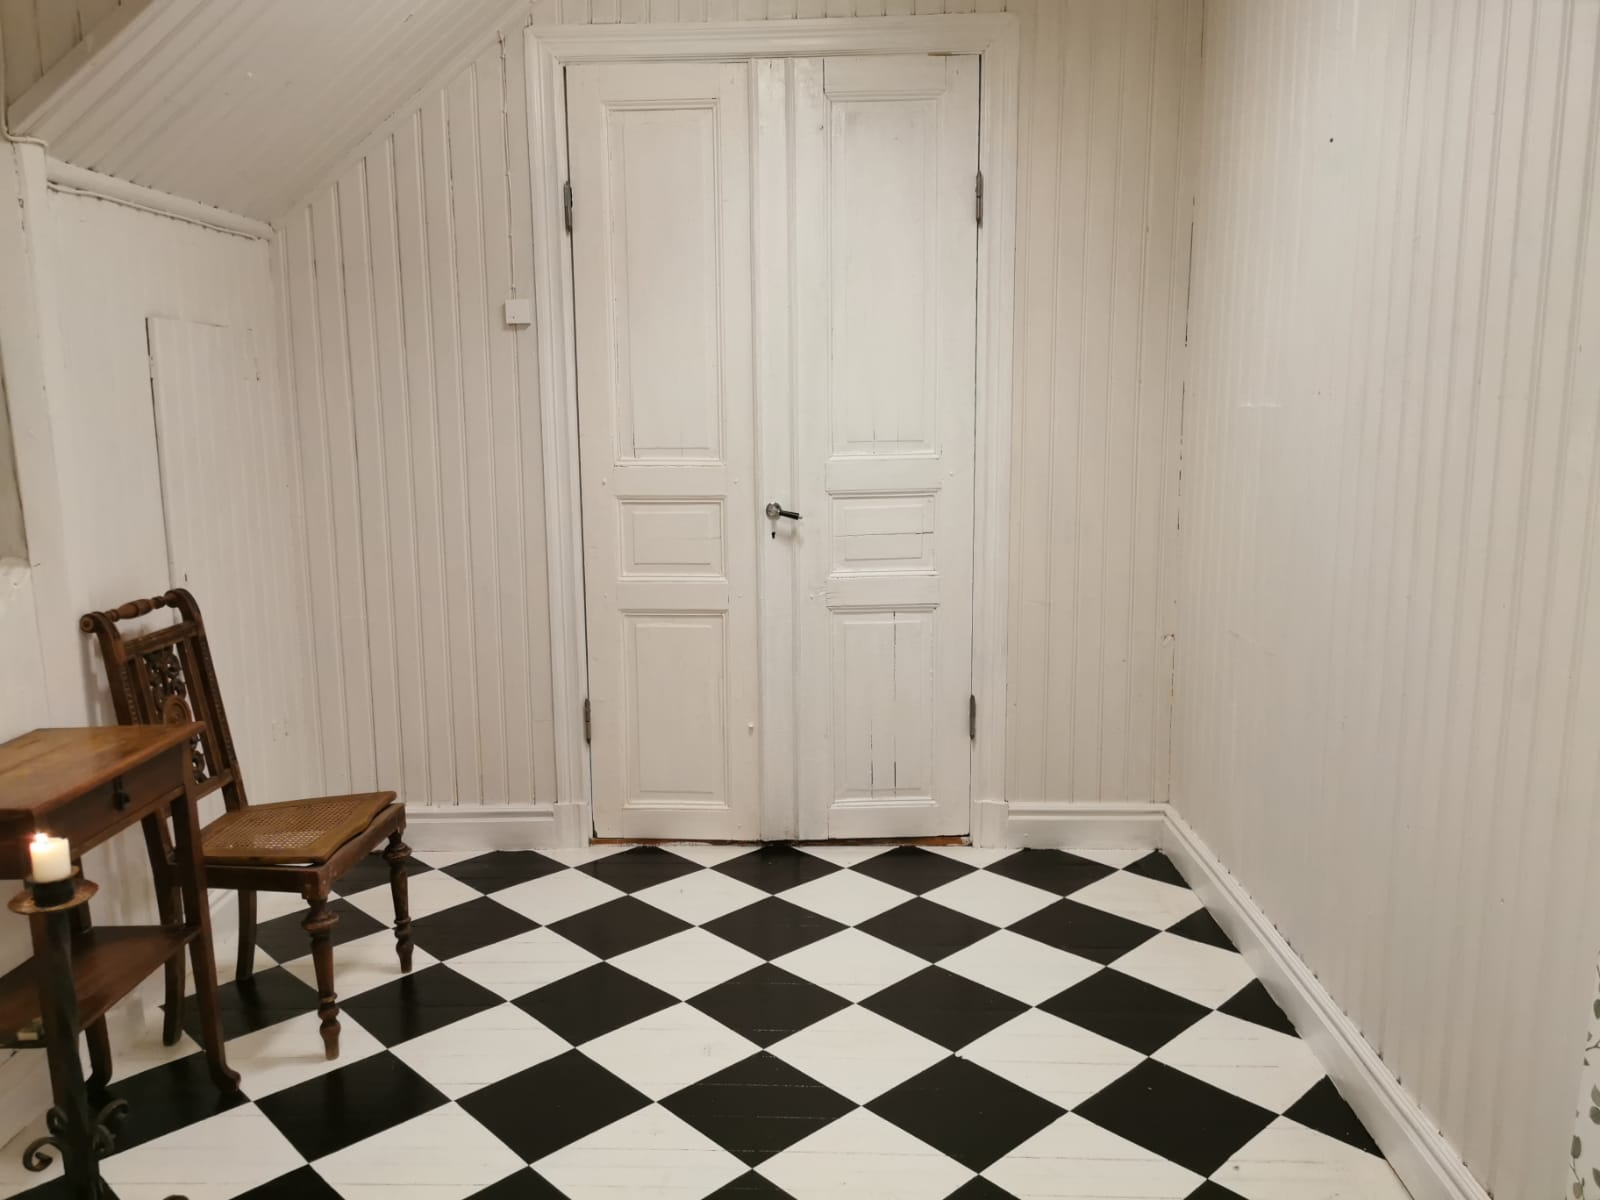 Painting Your Floor In A Chessboard Pattern – A Quick Guide